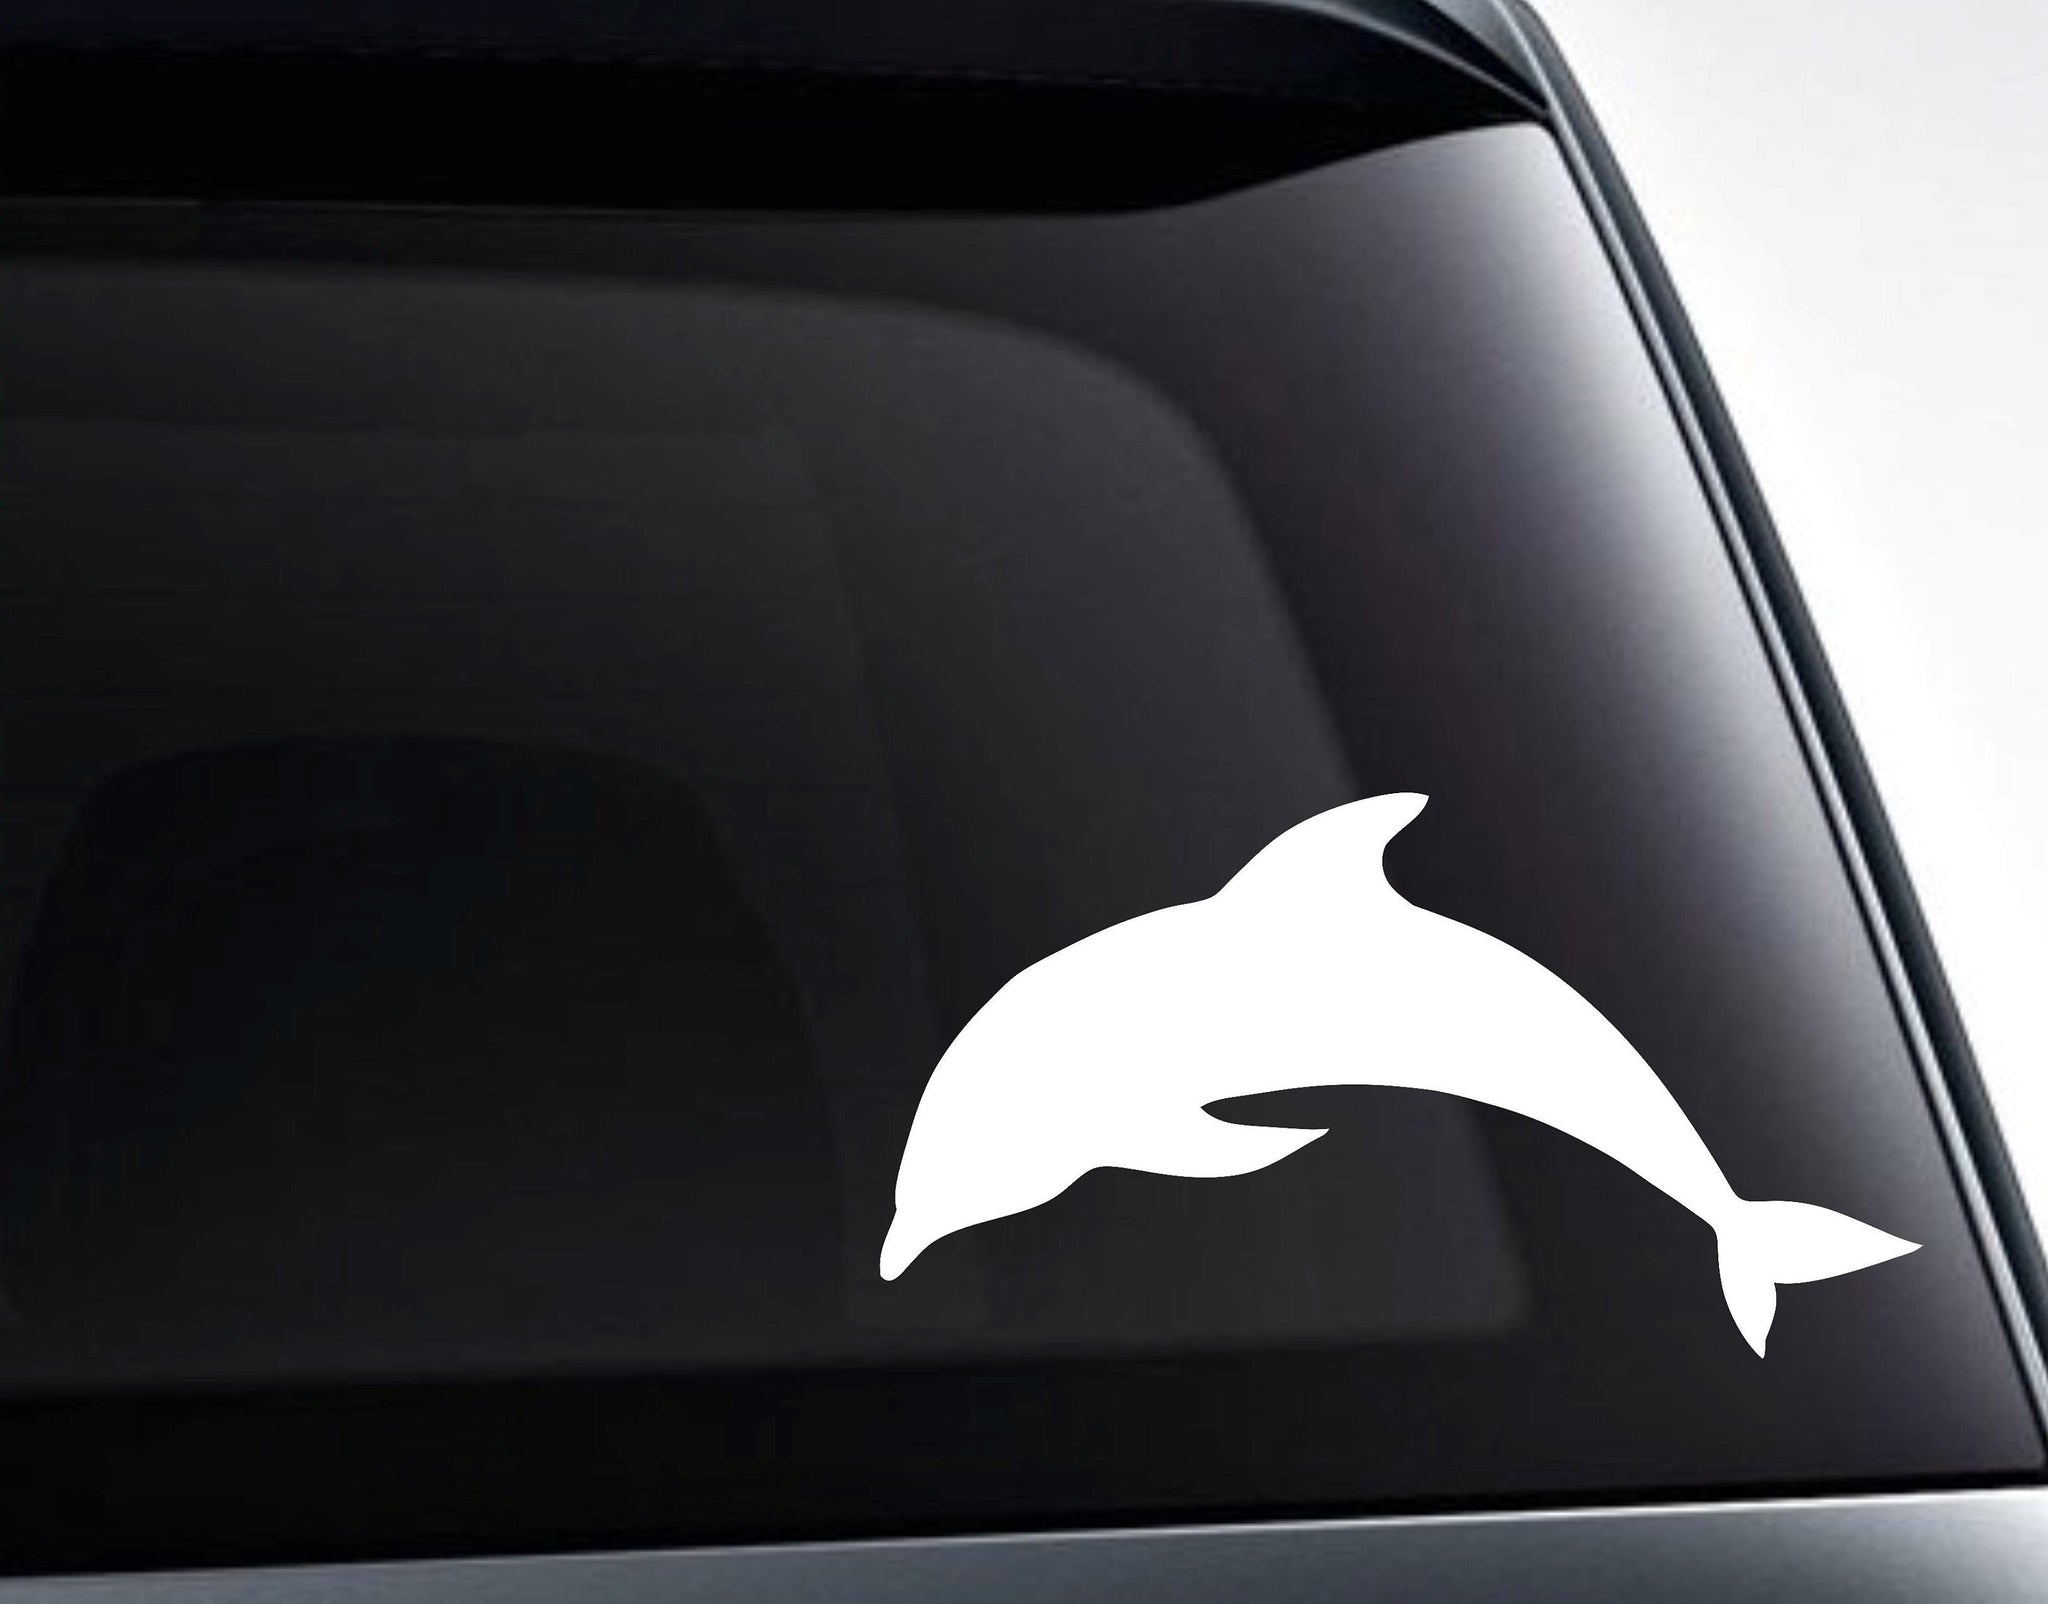 Dolphin Silhouette Vinyl Decal Sticker